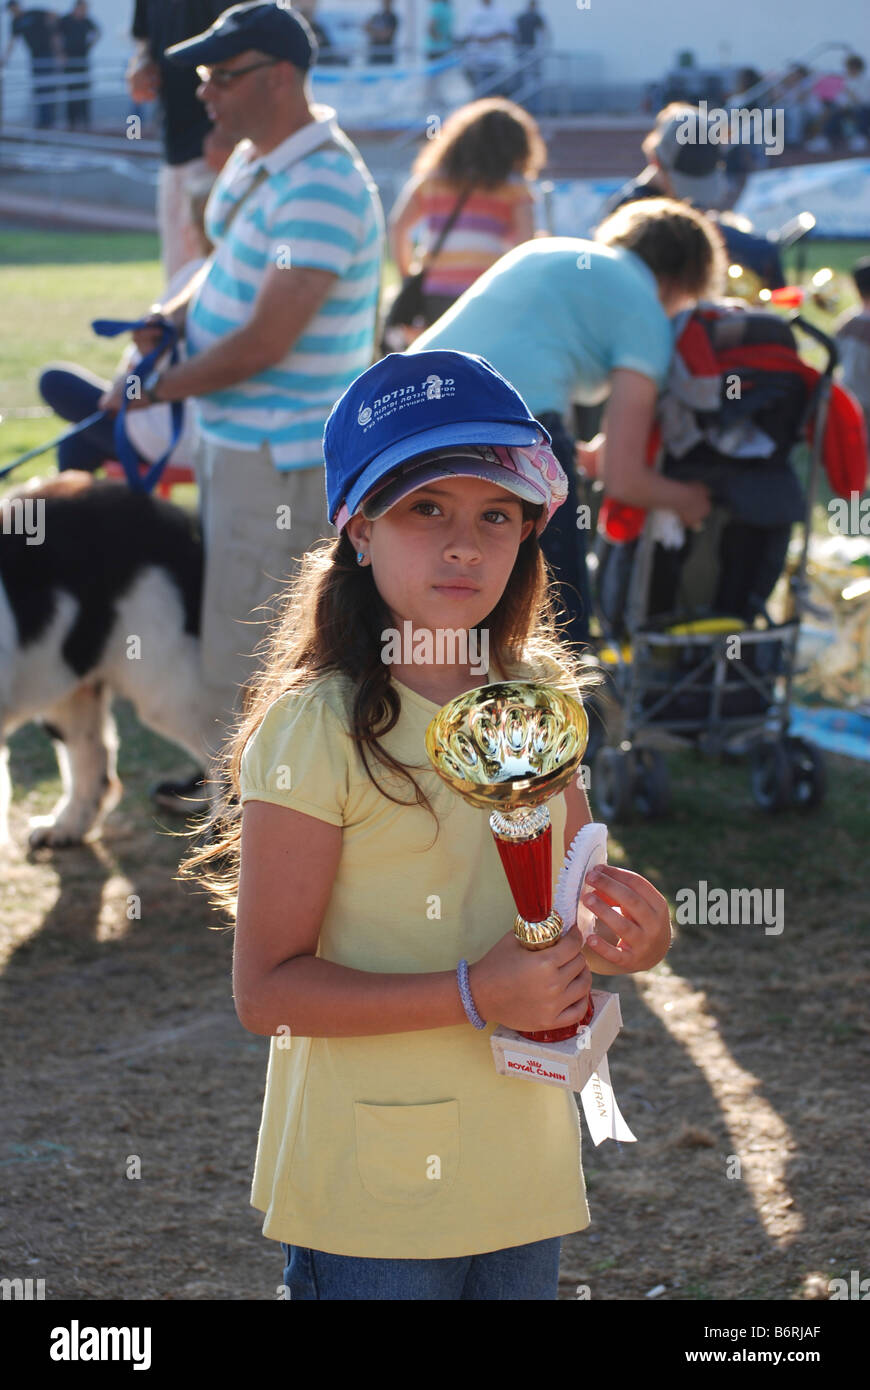 Israel International Dog Show May 17 2008 Young winner with her trophies - Stock Image